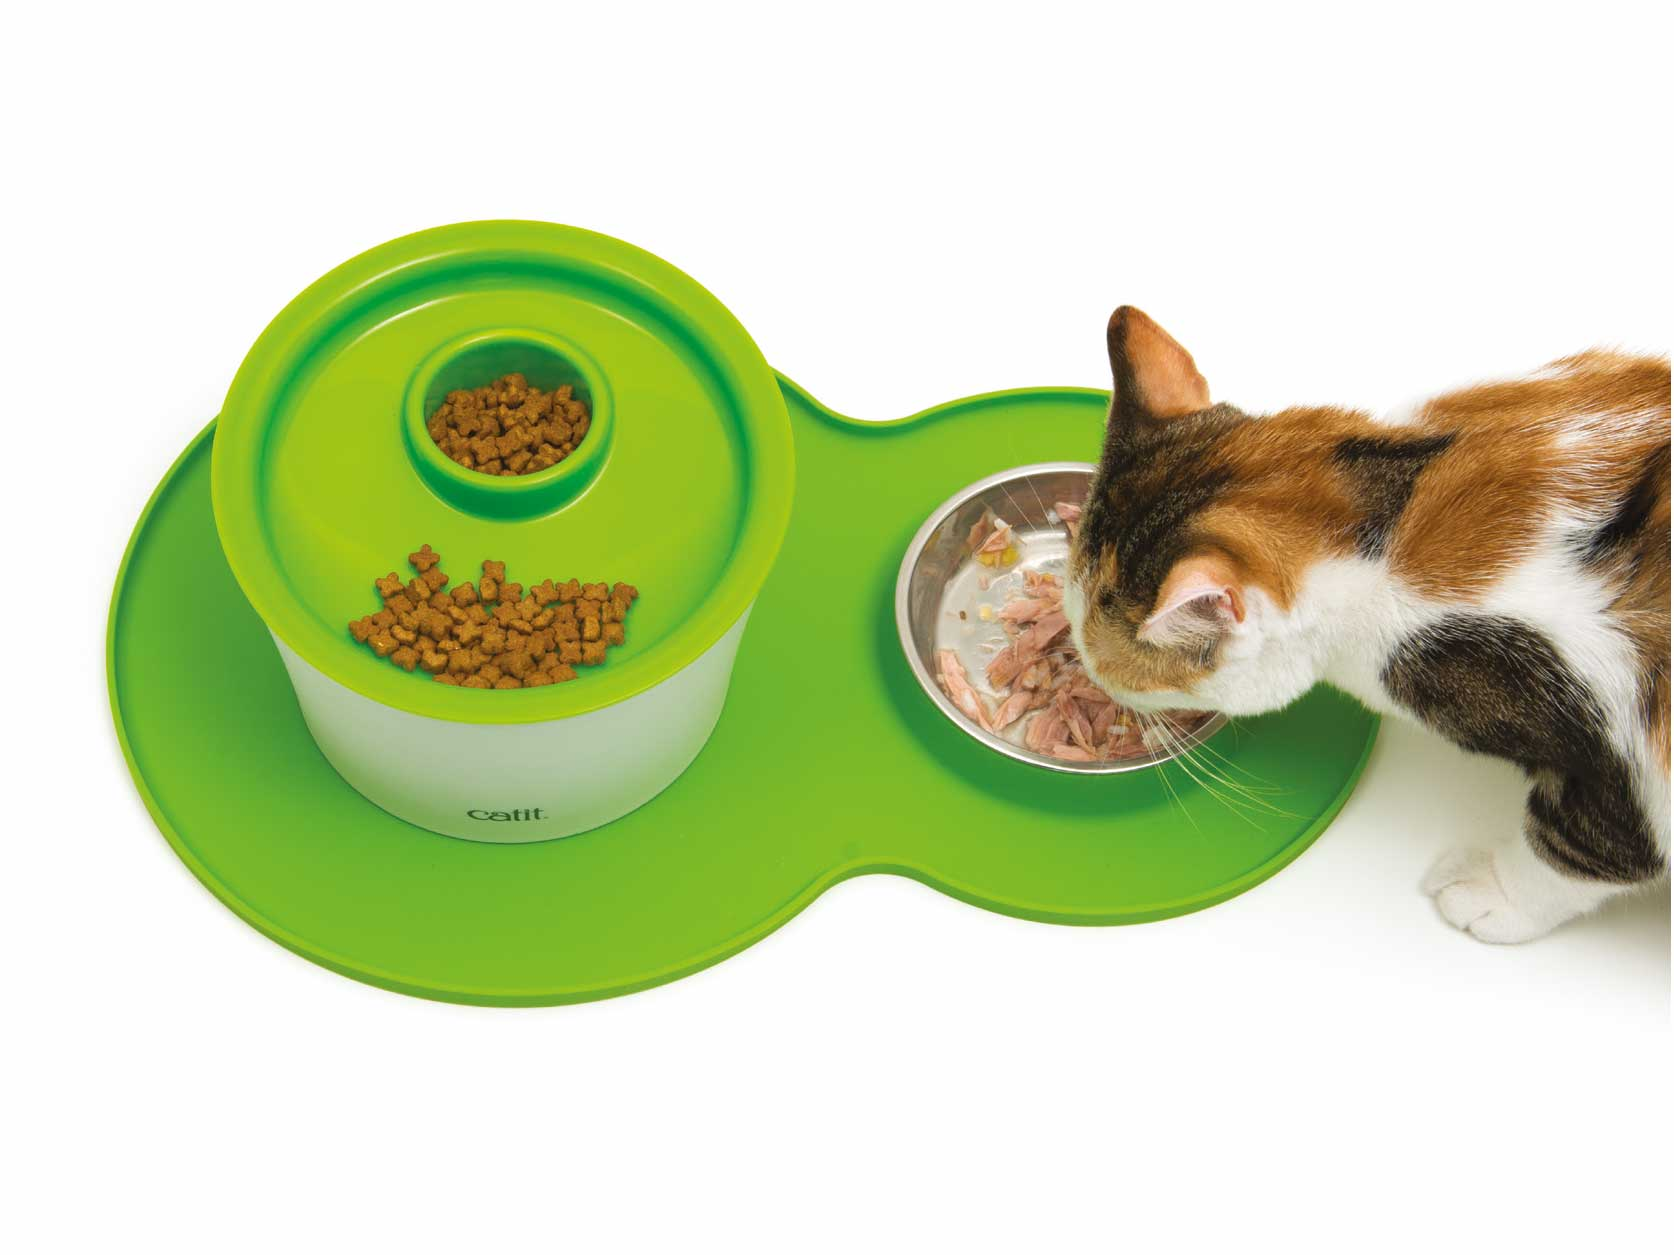 Pixi eating from peanut placemat withmultifeeder